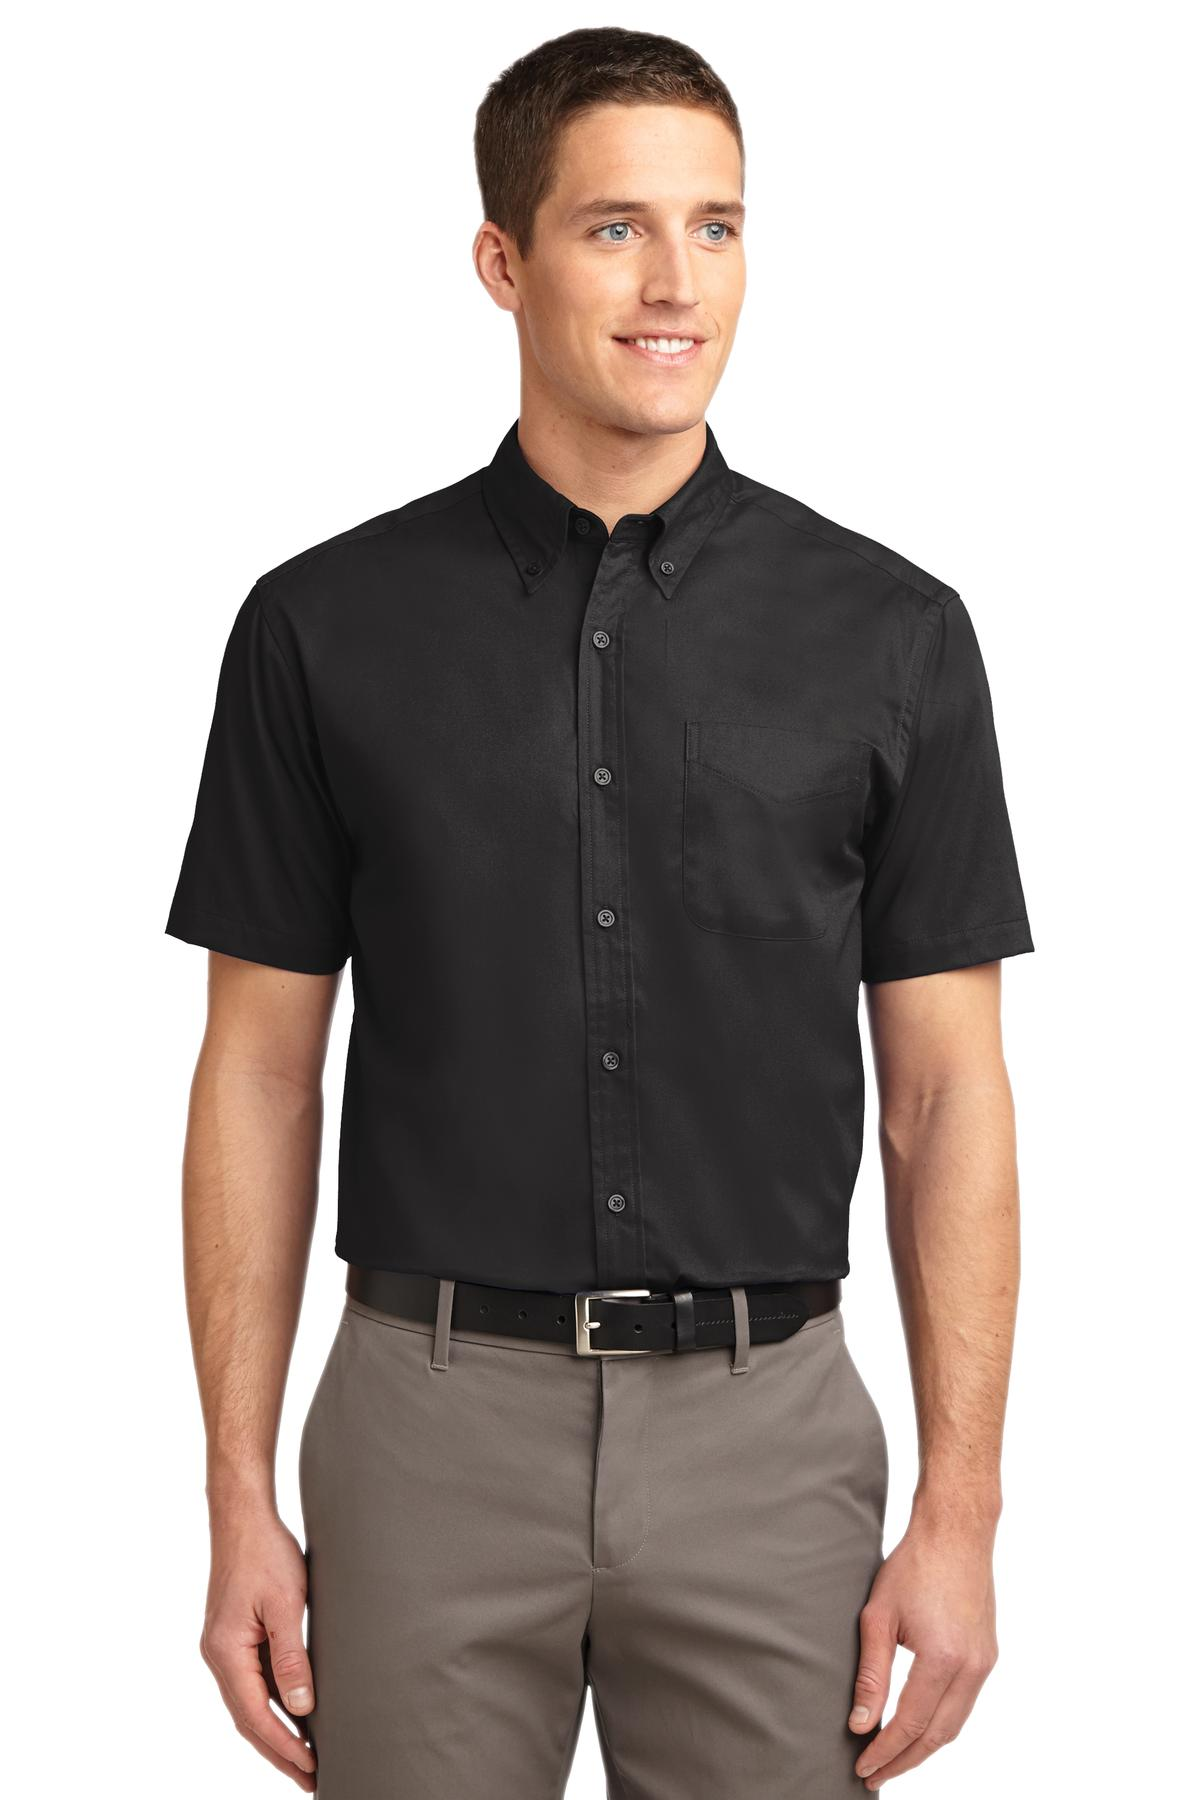 Port Authority ®  Short Sleeve Easy Care Shirt.  S508 - Black/Light Stone